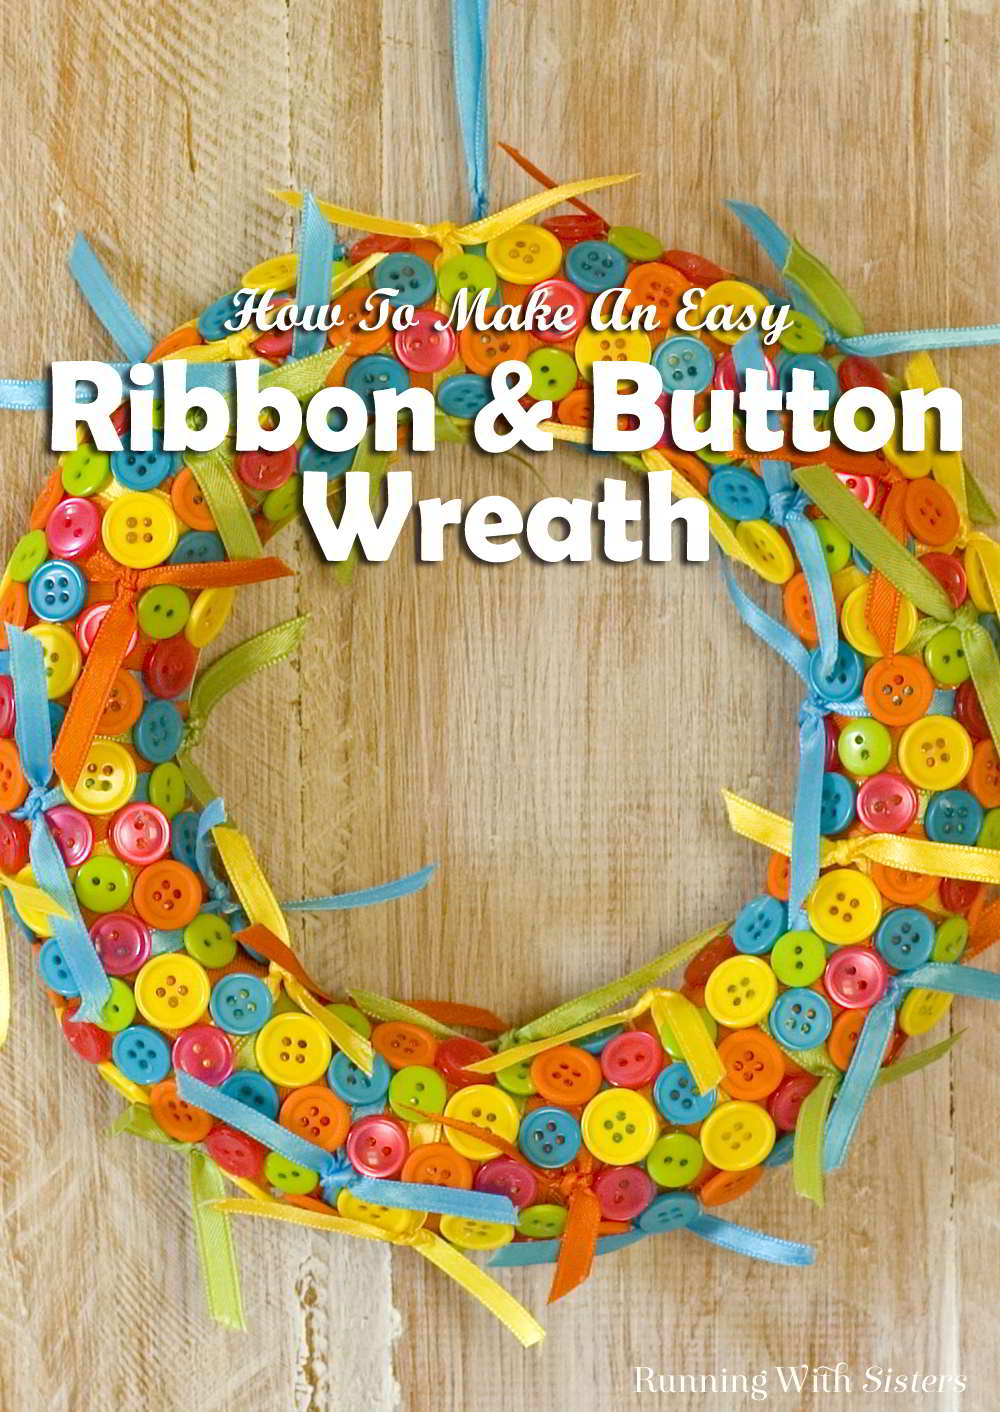 Make an easy ribbon and button wreath. Just wrap the wreath form with wide ribbon, tie on skinny ribbons, and glue on buttons!